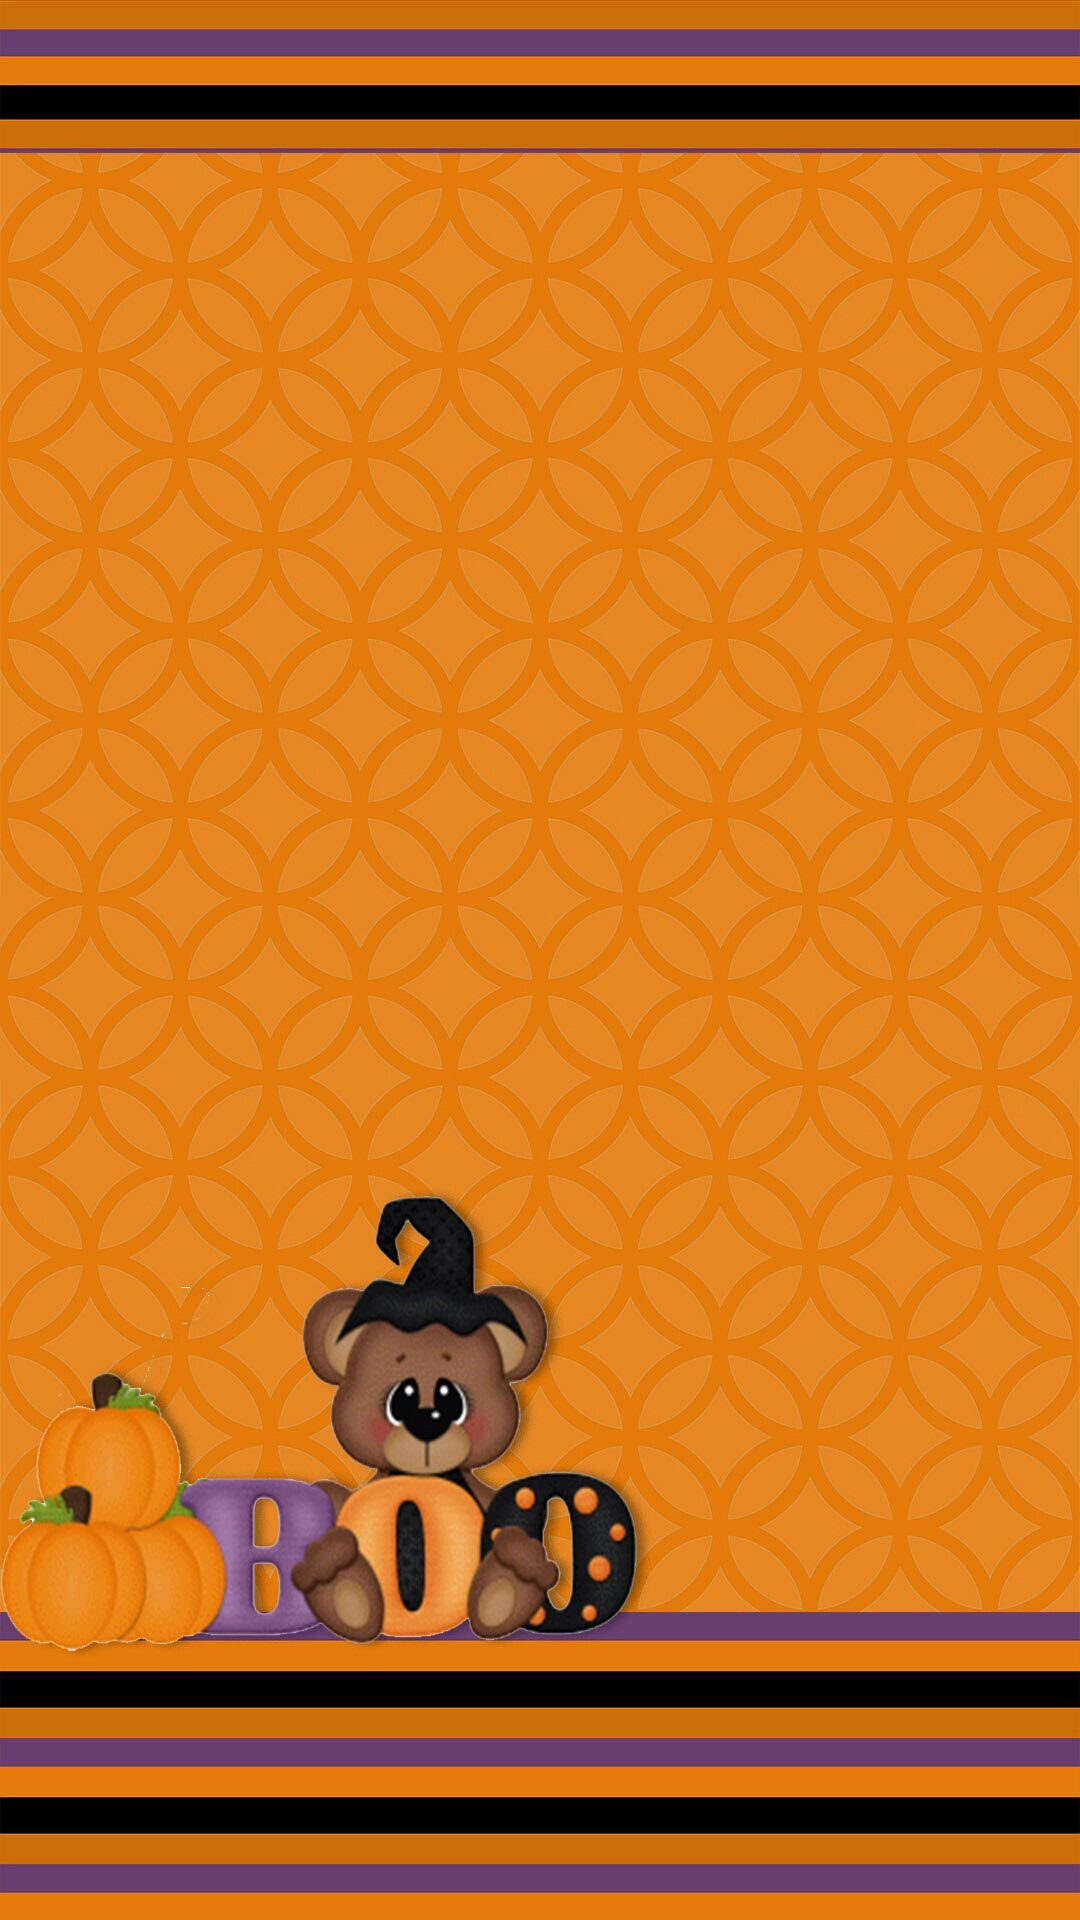 Pin By Terrie On More Wallz Halloween Wallpaper Iphone Halloween Wallpaper Snoopy Halloween